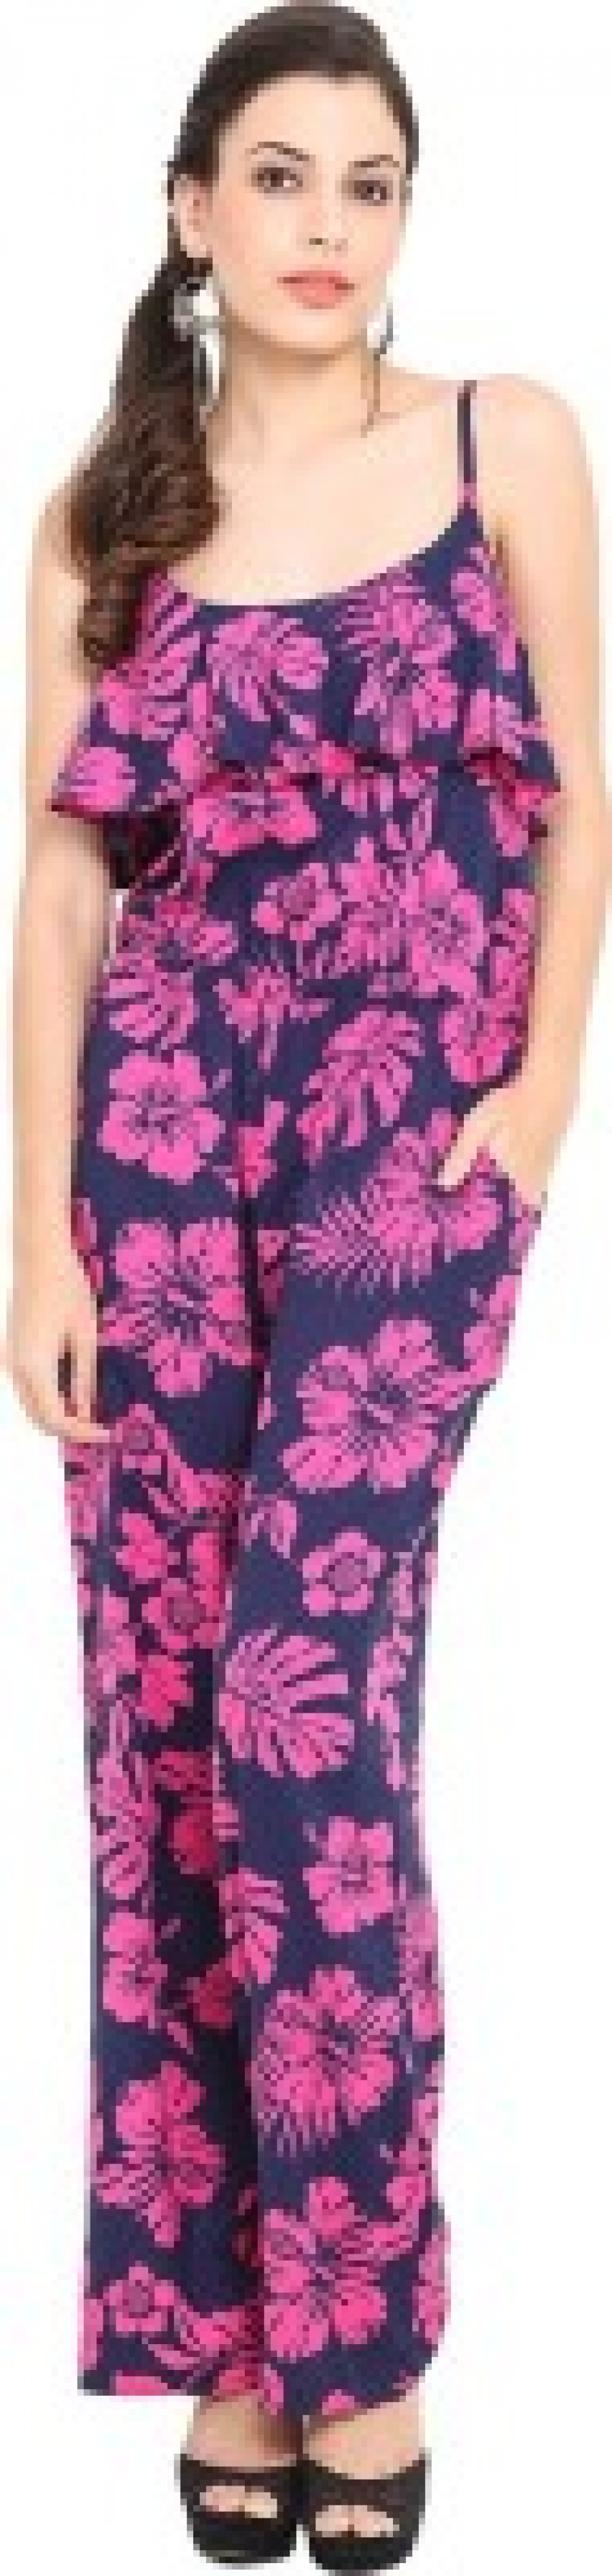 Buy Pryma Donna Floral Print Womens Jumpsuit Online